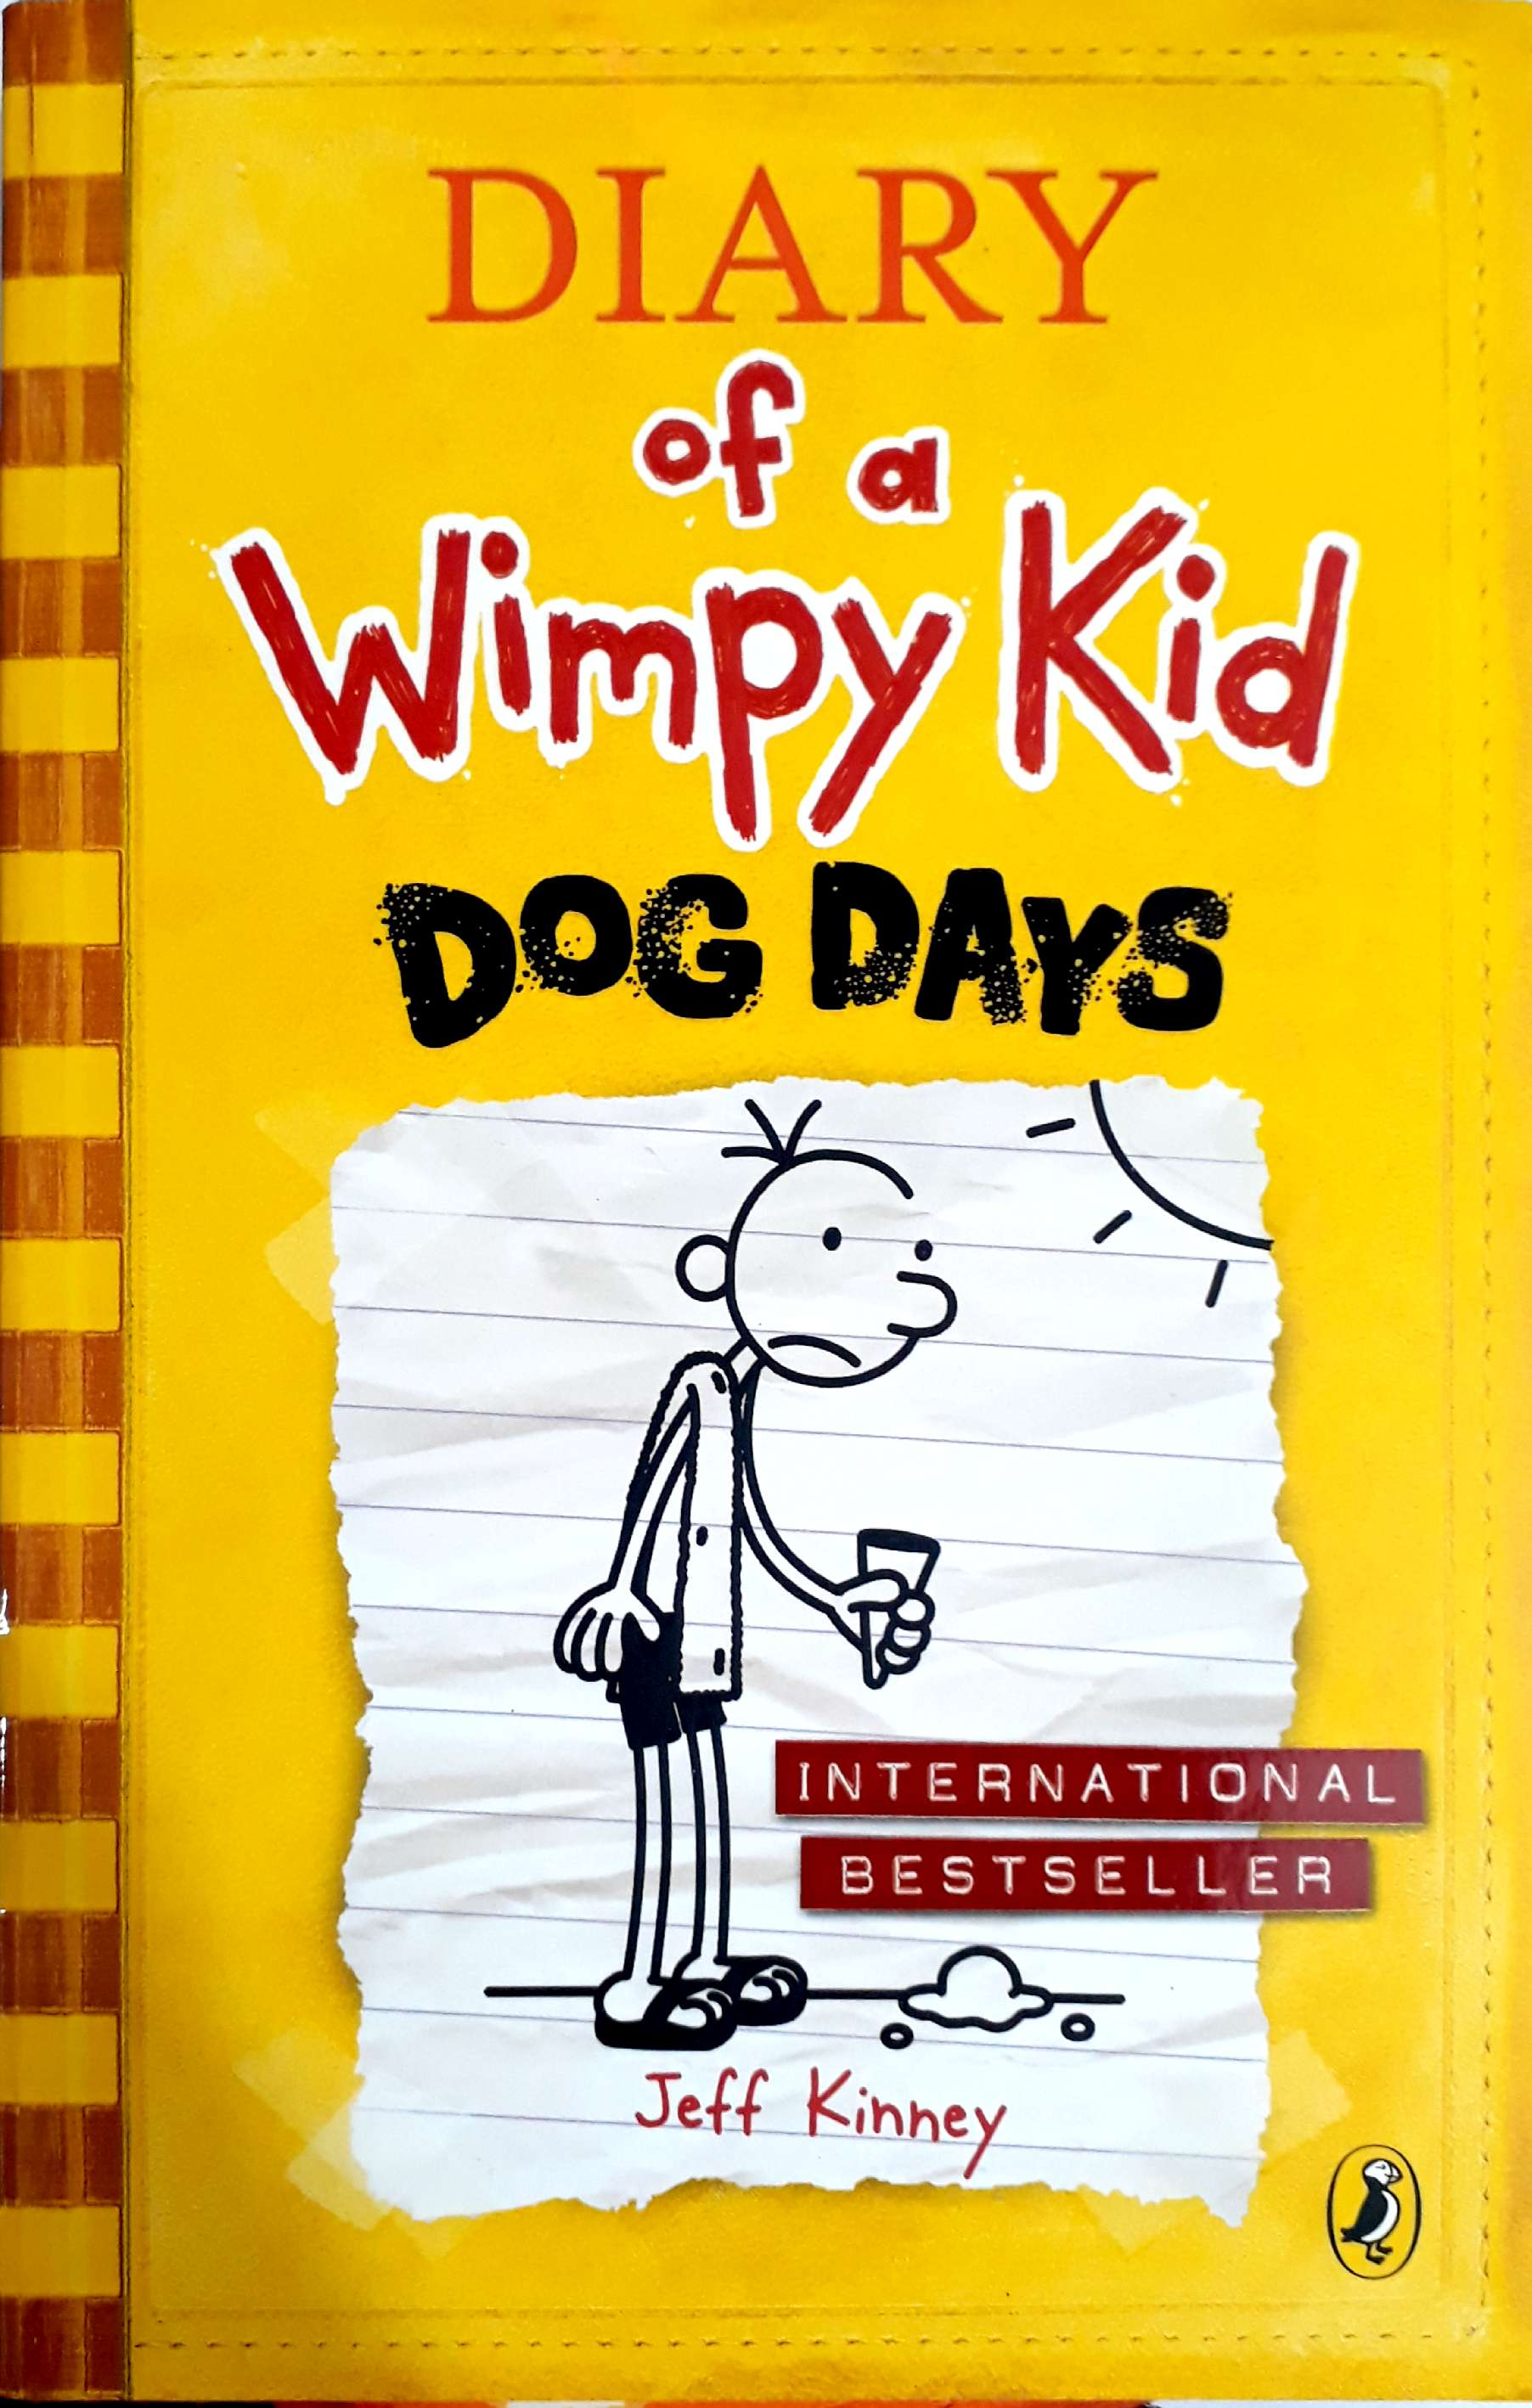 the major conflict in diary of wimpy kid